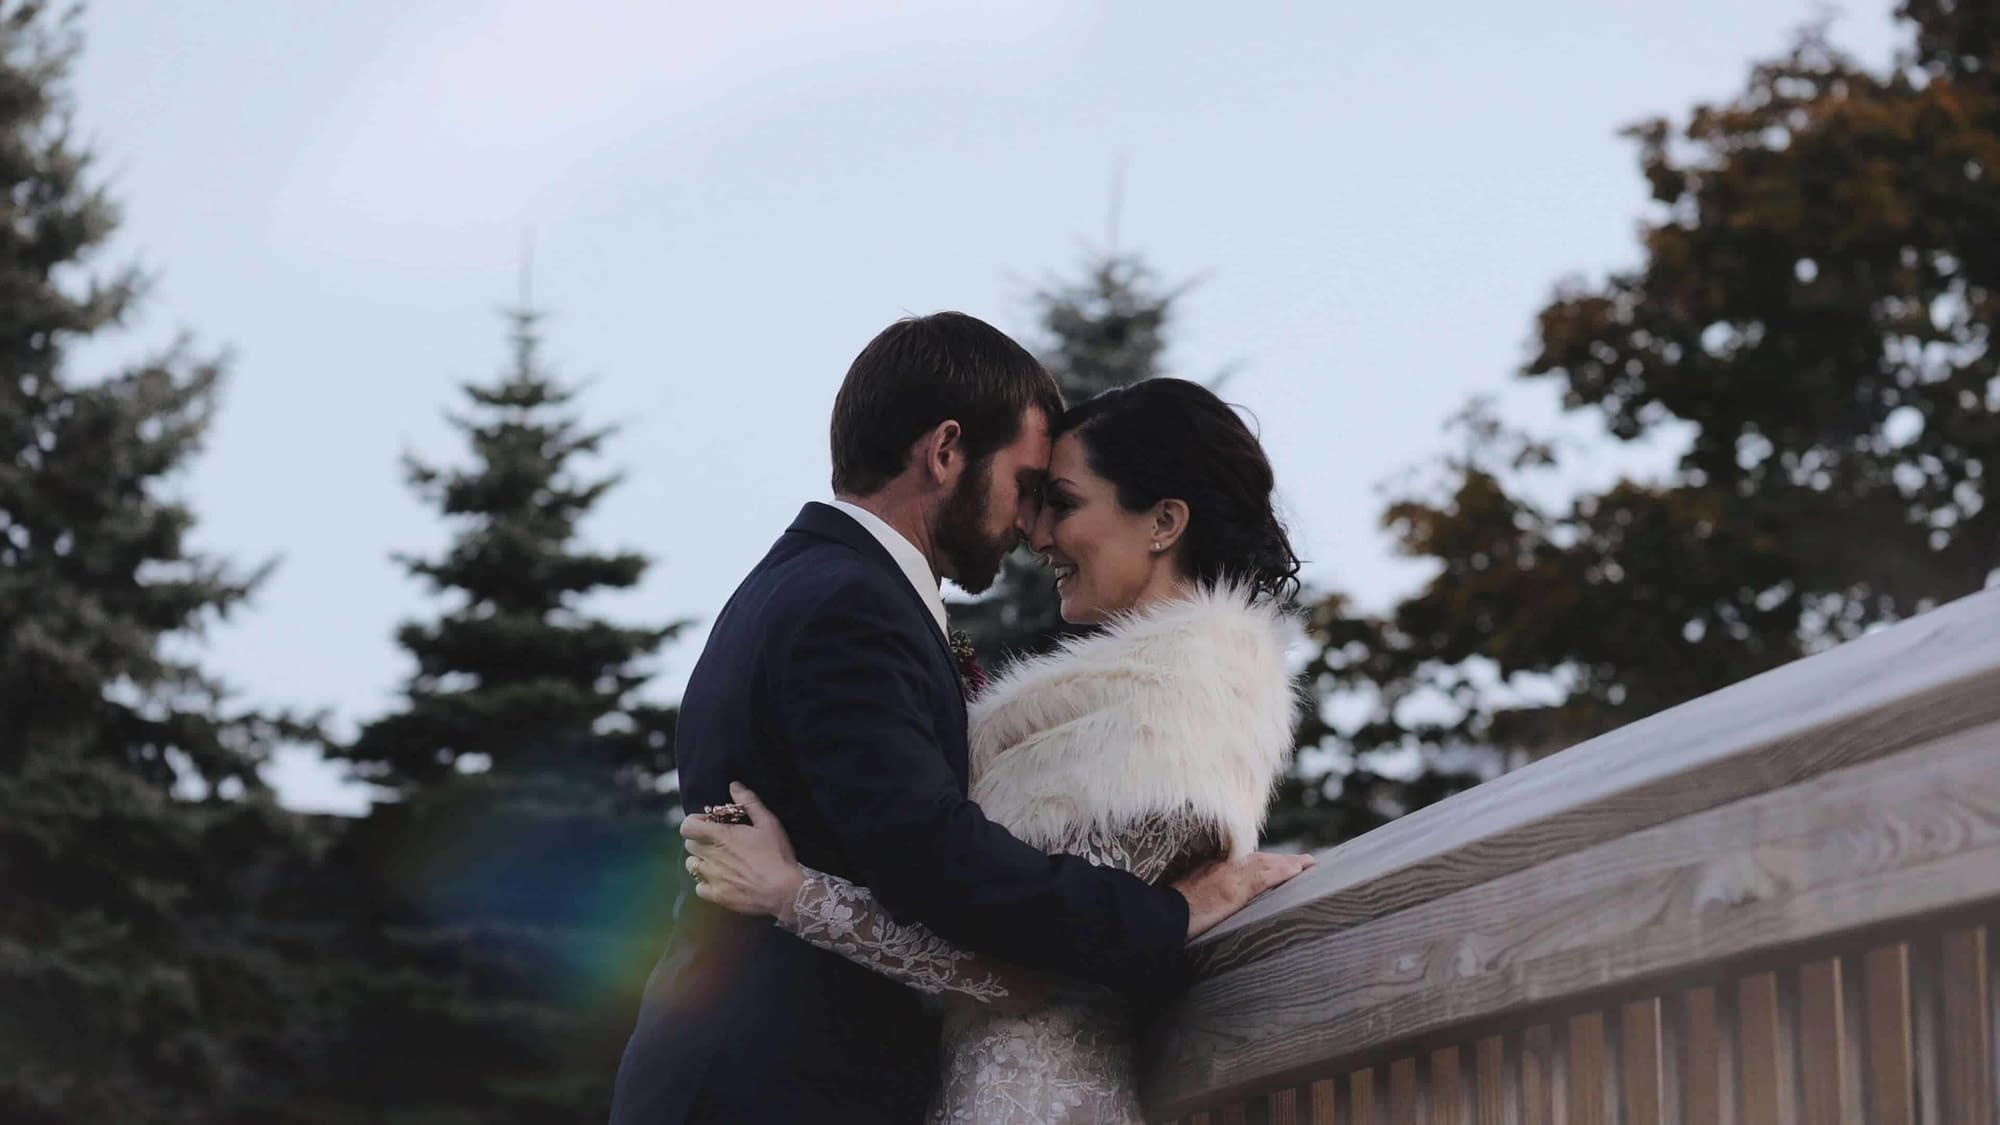 BOston wedding videographer